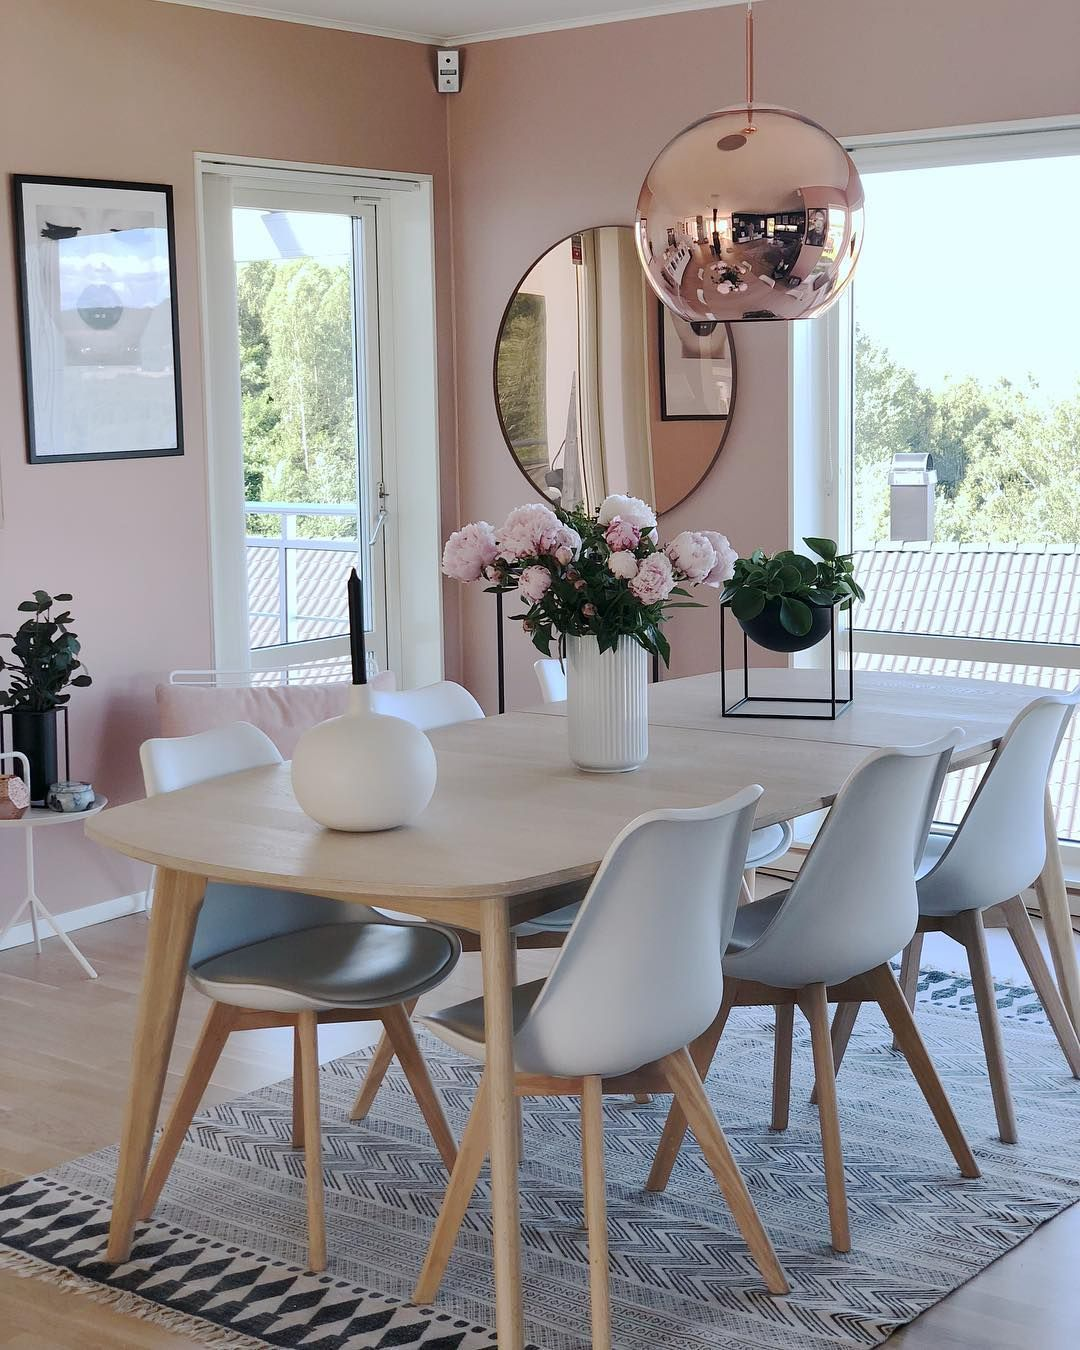 Casual Dining Rooms Decorating Ideas For A Soothing Interior: Pin By Jasmine Briggs On Home Decor Inspiration